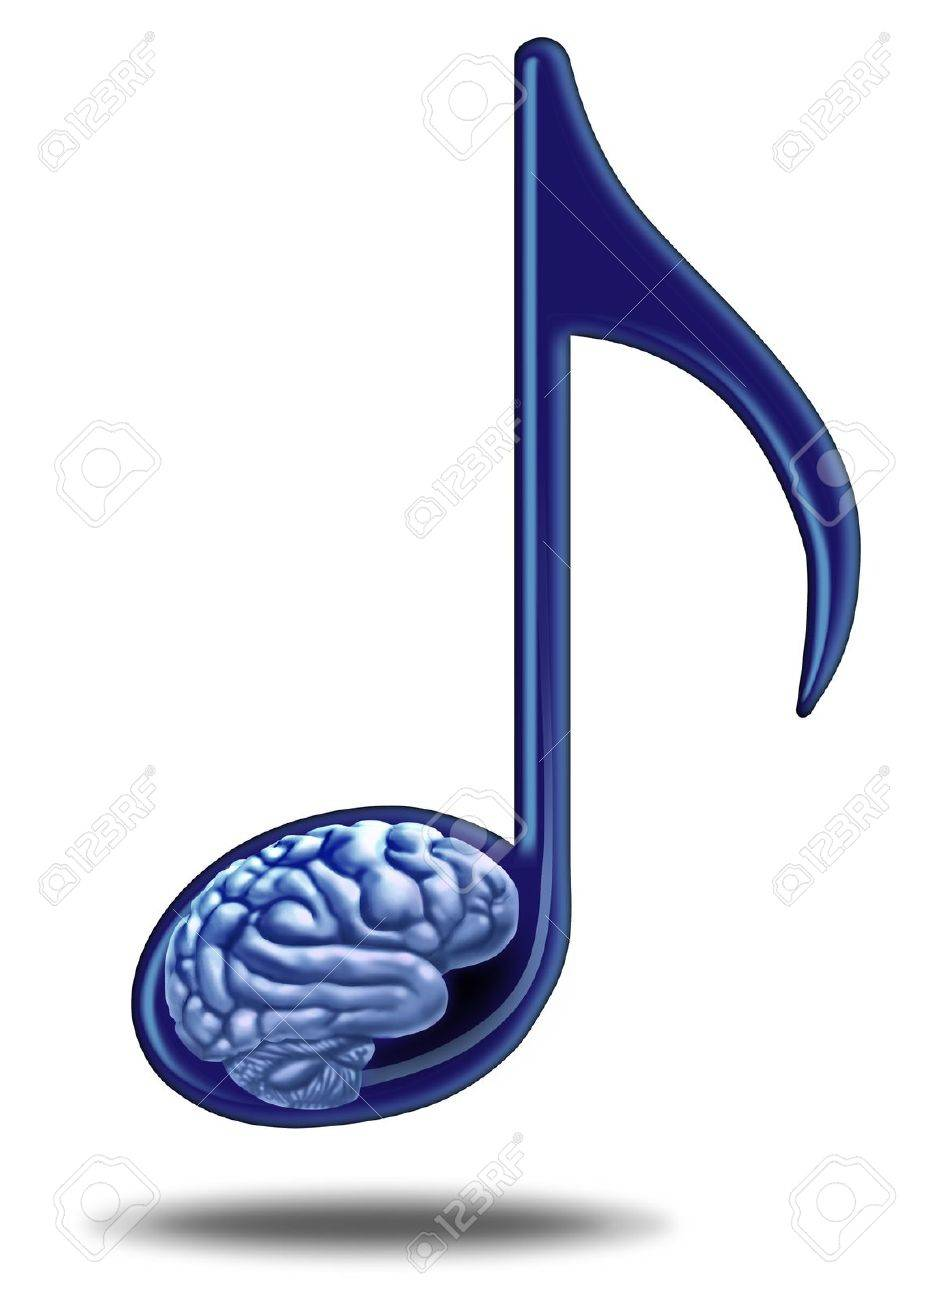 Music education and medical therapy with a musical note containing music education and medical therapy with a musical note containing a human brain as a symbol biocorpaavc Gallery